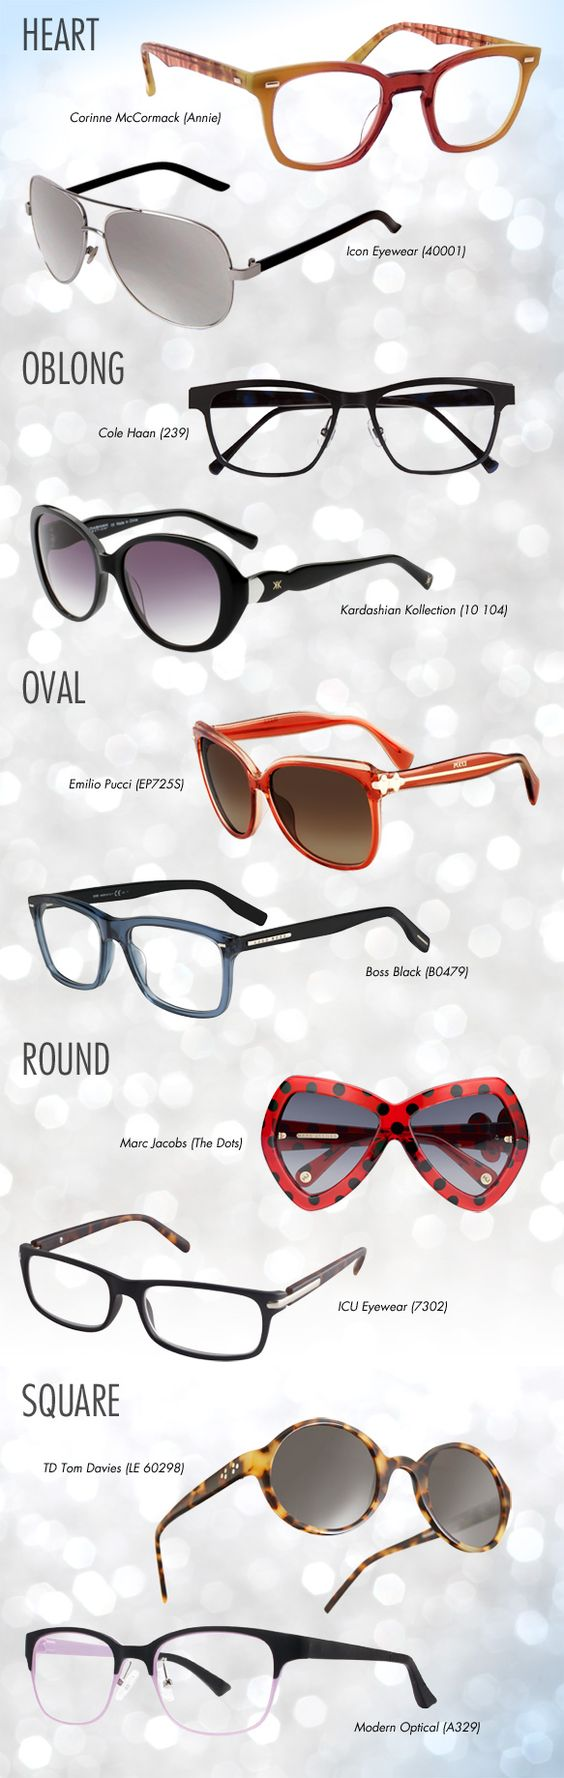 Picking Eyeglass Frames For Your Face : Choosing right hairstyles and eyeglasses that suit for ...